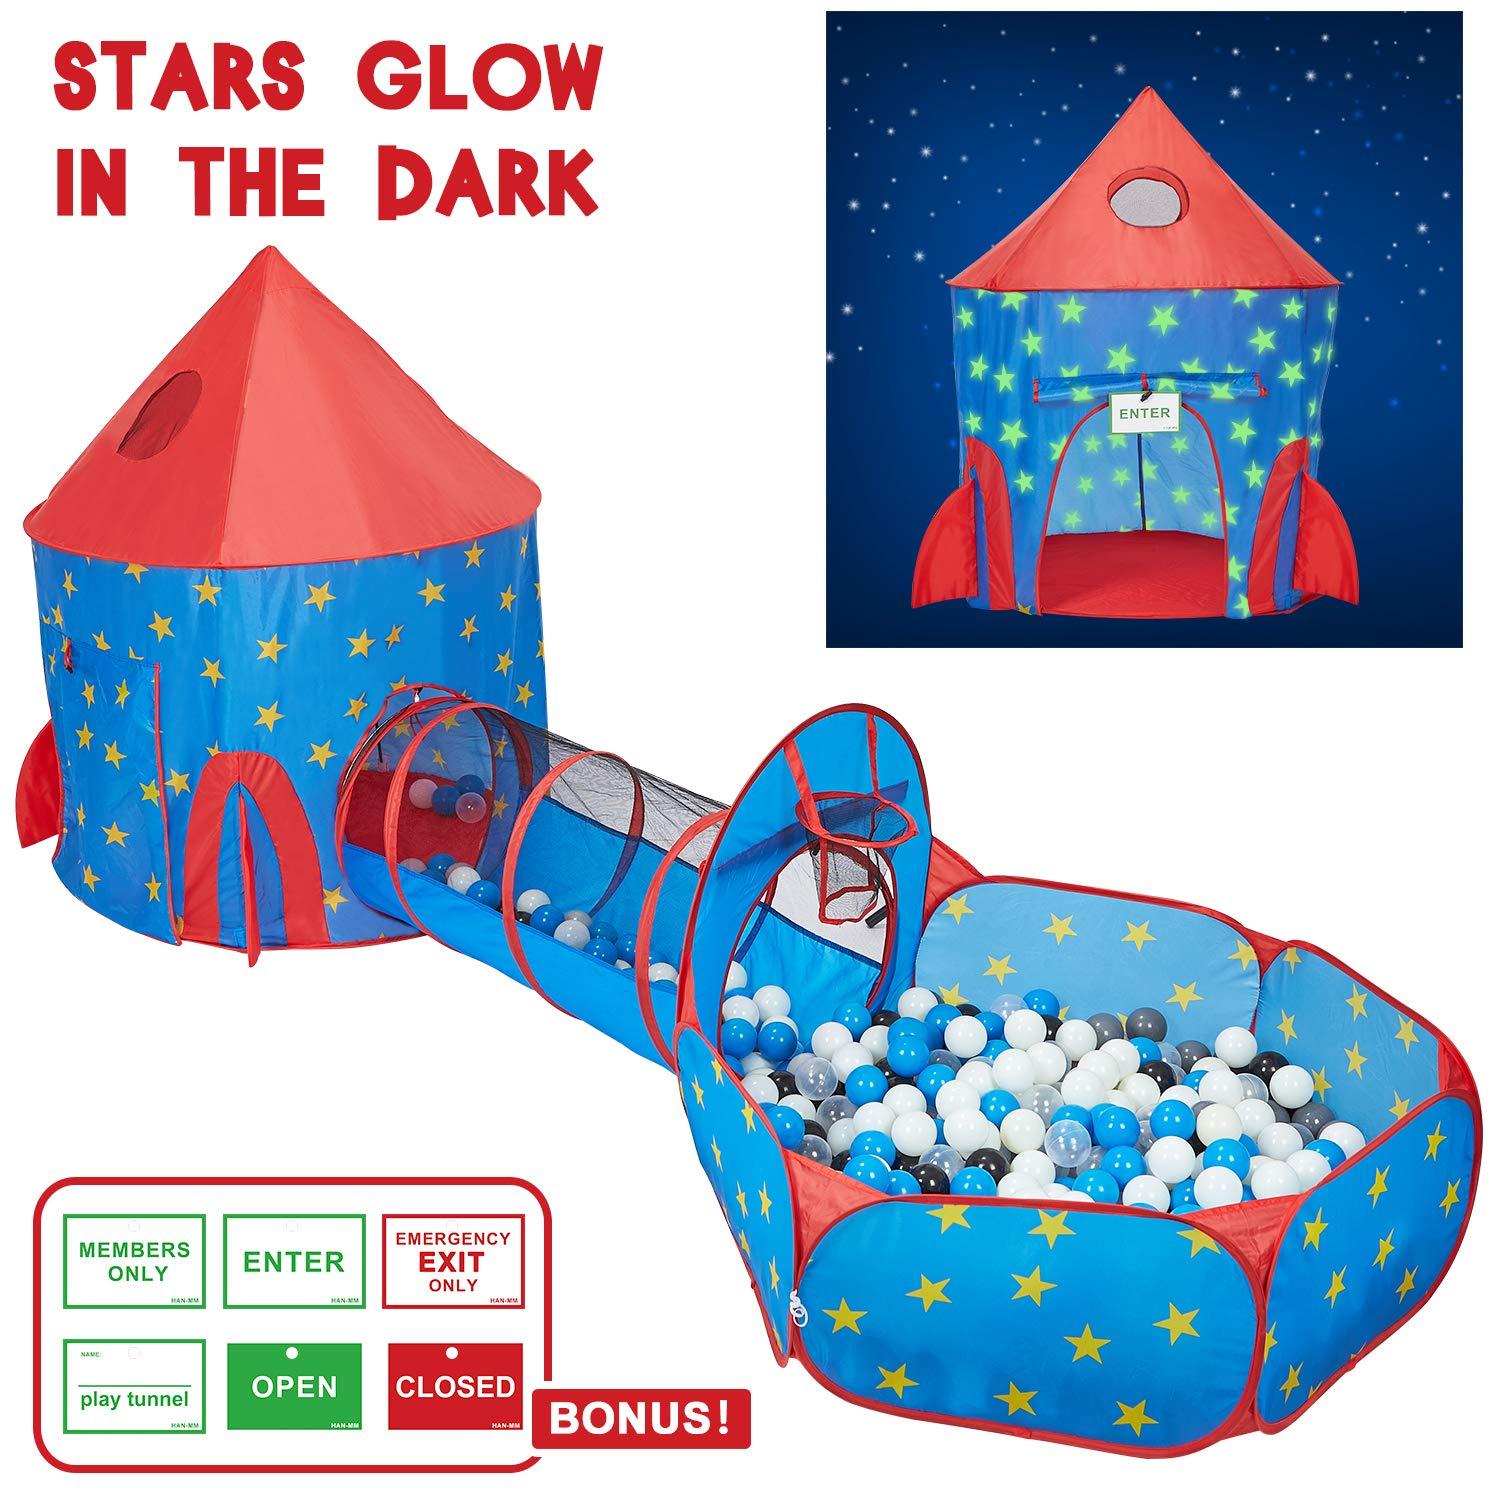 HAN-MM 3pc Play Tent Ball Pit with Tunnel Stars Glow in The Dark, Tunnel & Ball Pit Basketball Rocket Ship Astronaut Hoop Toys with Bonus Message Signs for Indoor Outdoor Camping by HAN-MM (Image #1)